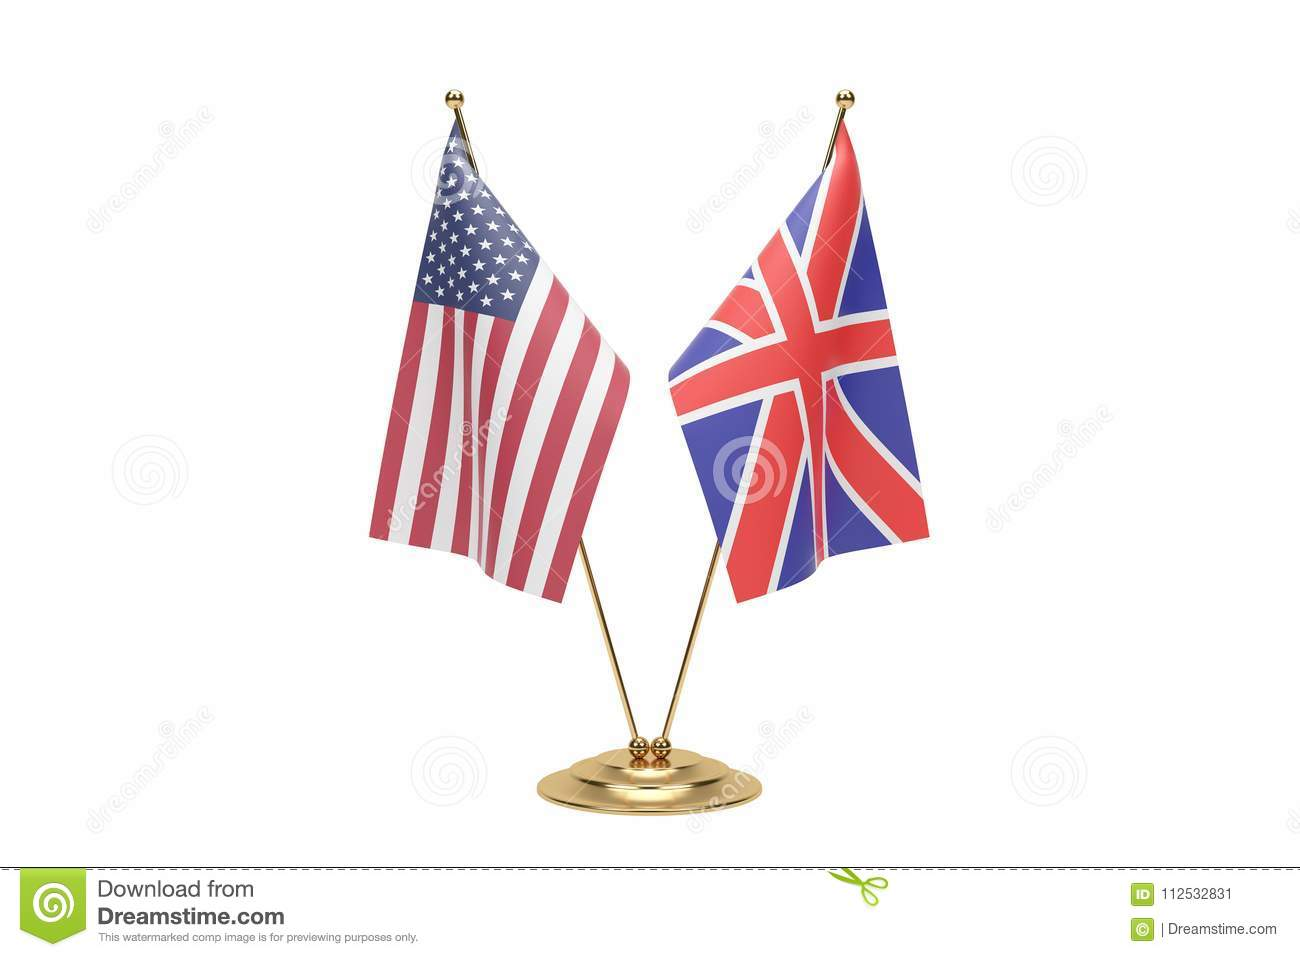 Map Of Usa And England.Miniature Usa And England Flag Concept On White With Clipping Path